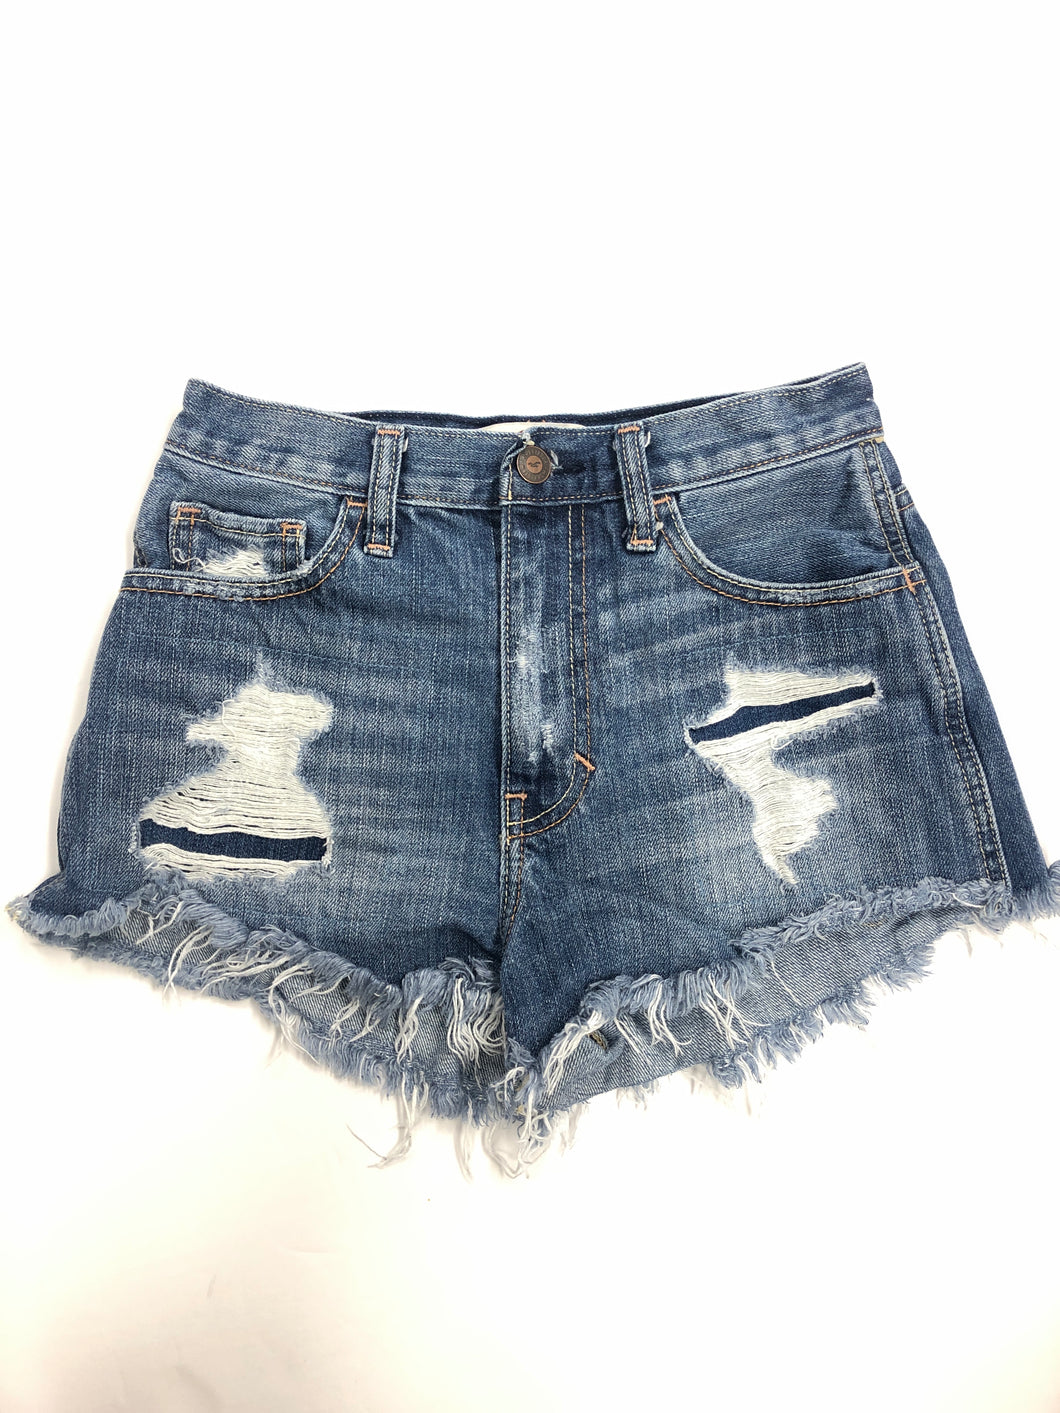 Hollister Womens Shorts Size 00